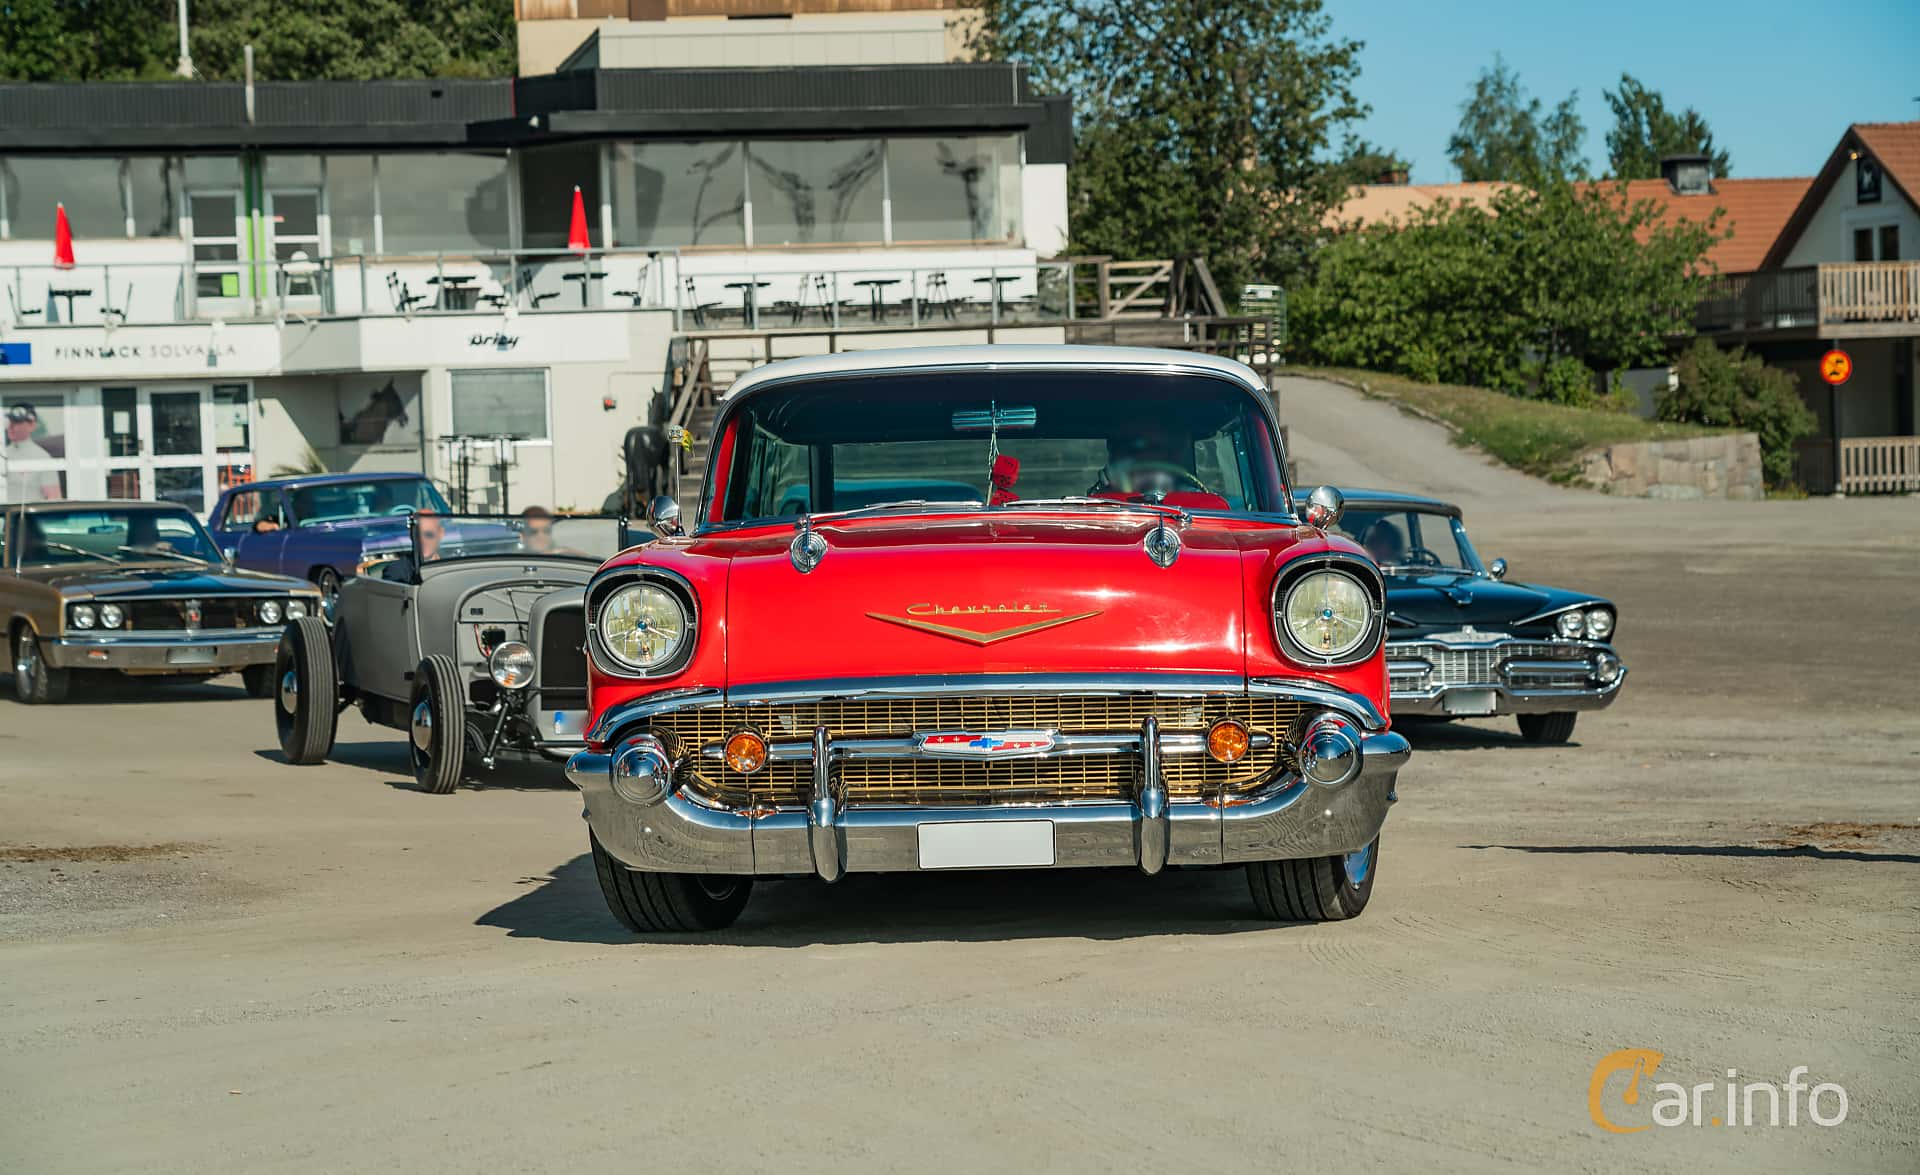 Chevrolet Bel Air Nomad 4.6 V8 Powerglide, 223hp, 1957 at Stockholm Vintage & Sports Car meet 2019